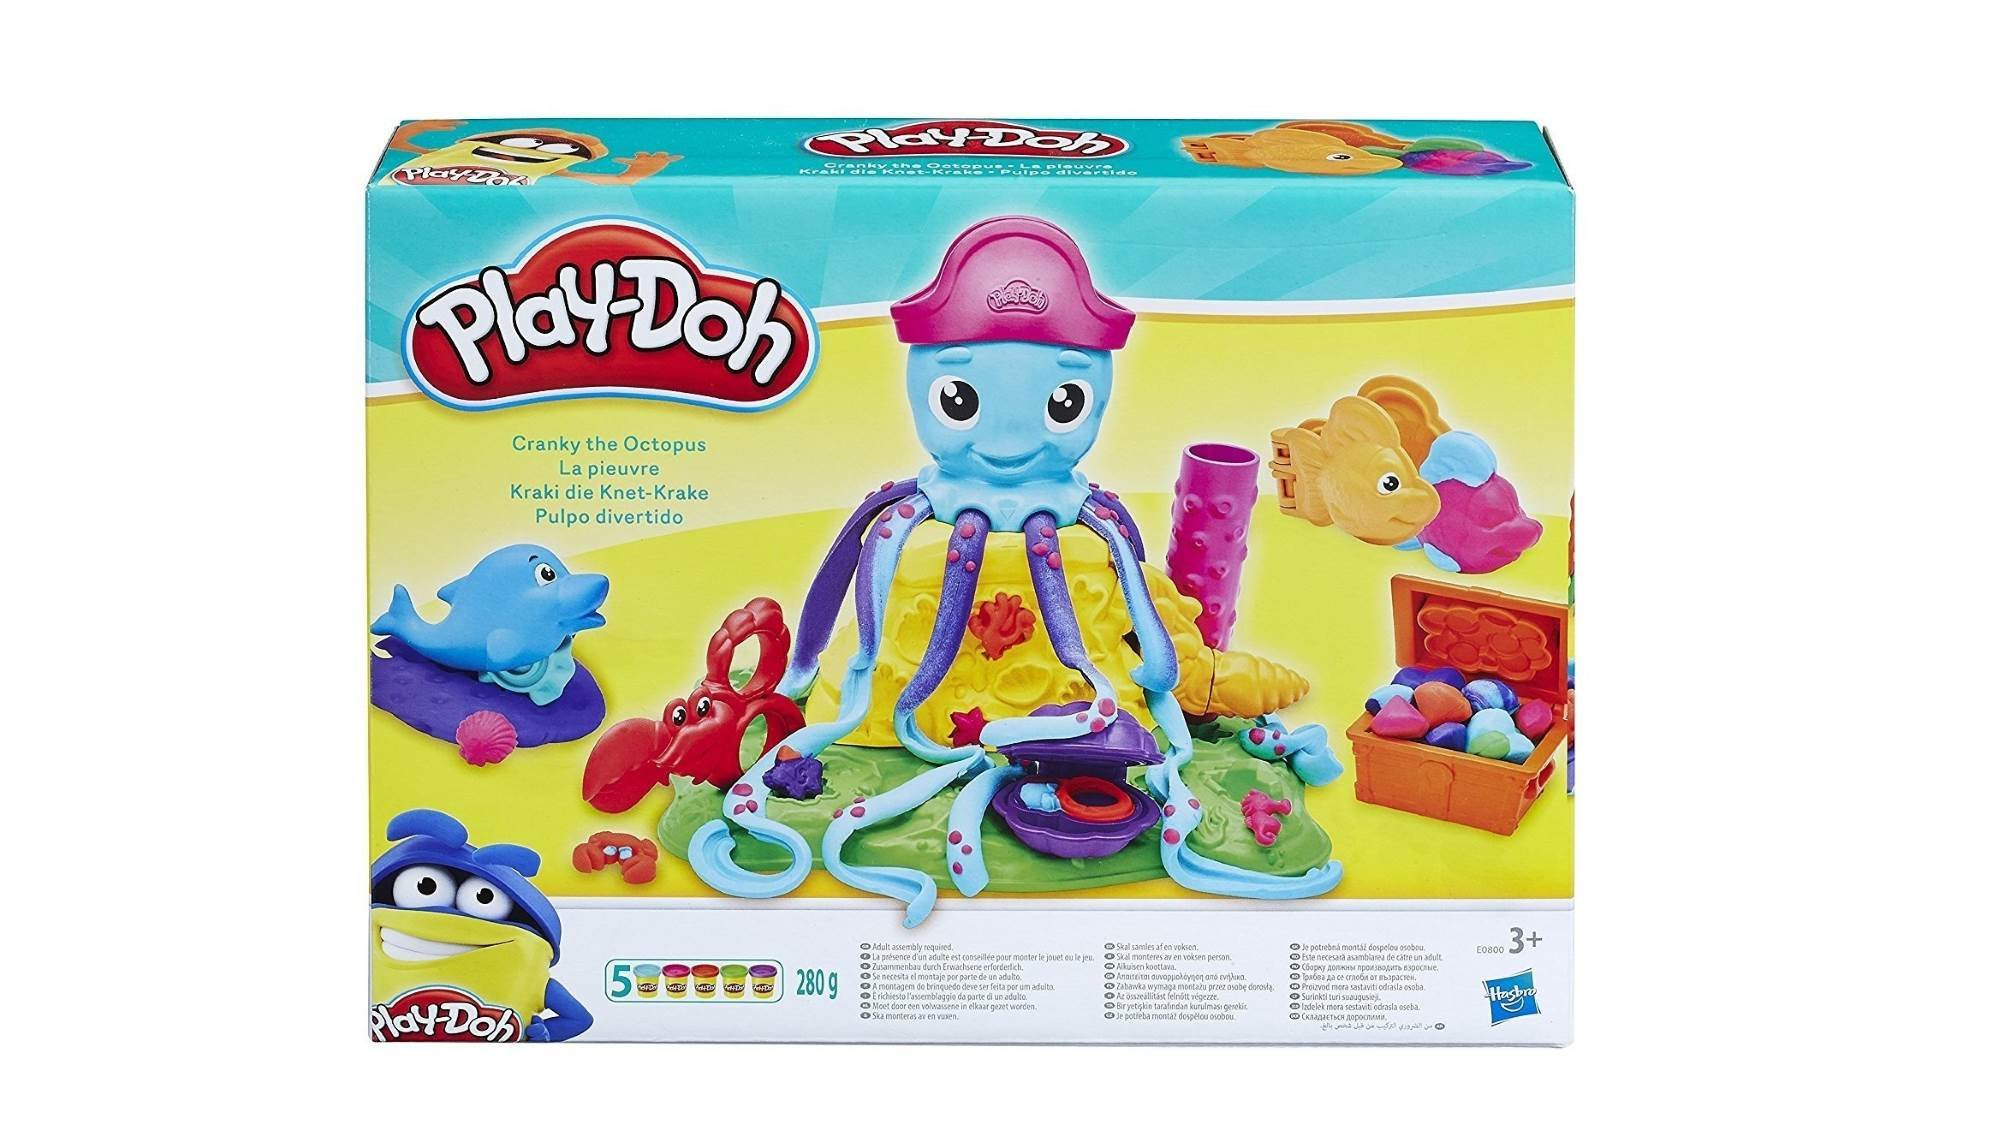 The best toys for 4-year-olds, 5-year-olds, 6-year-olds ...